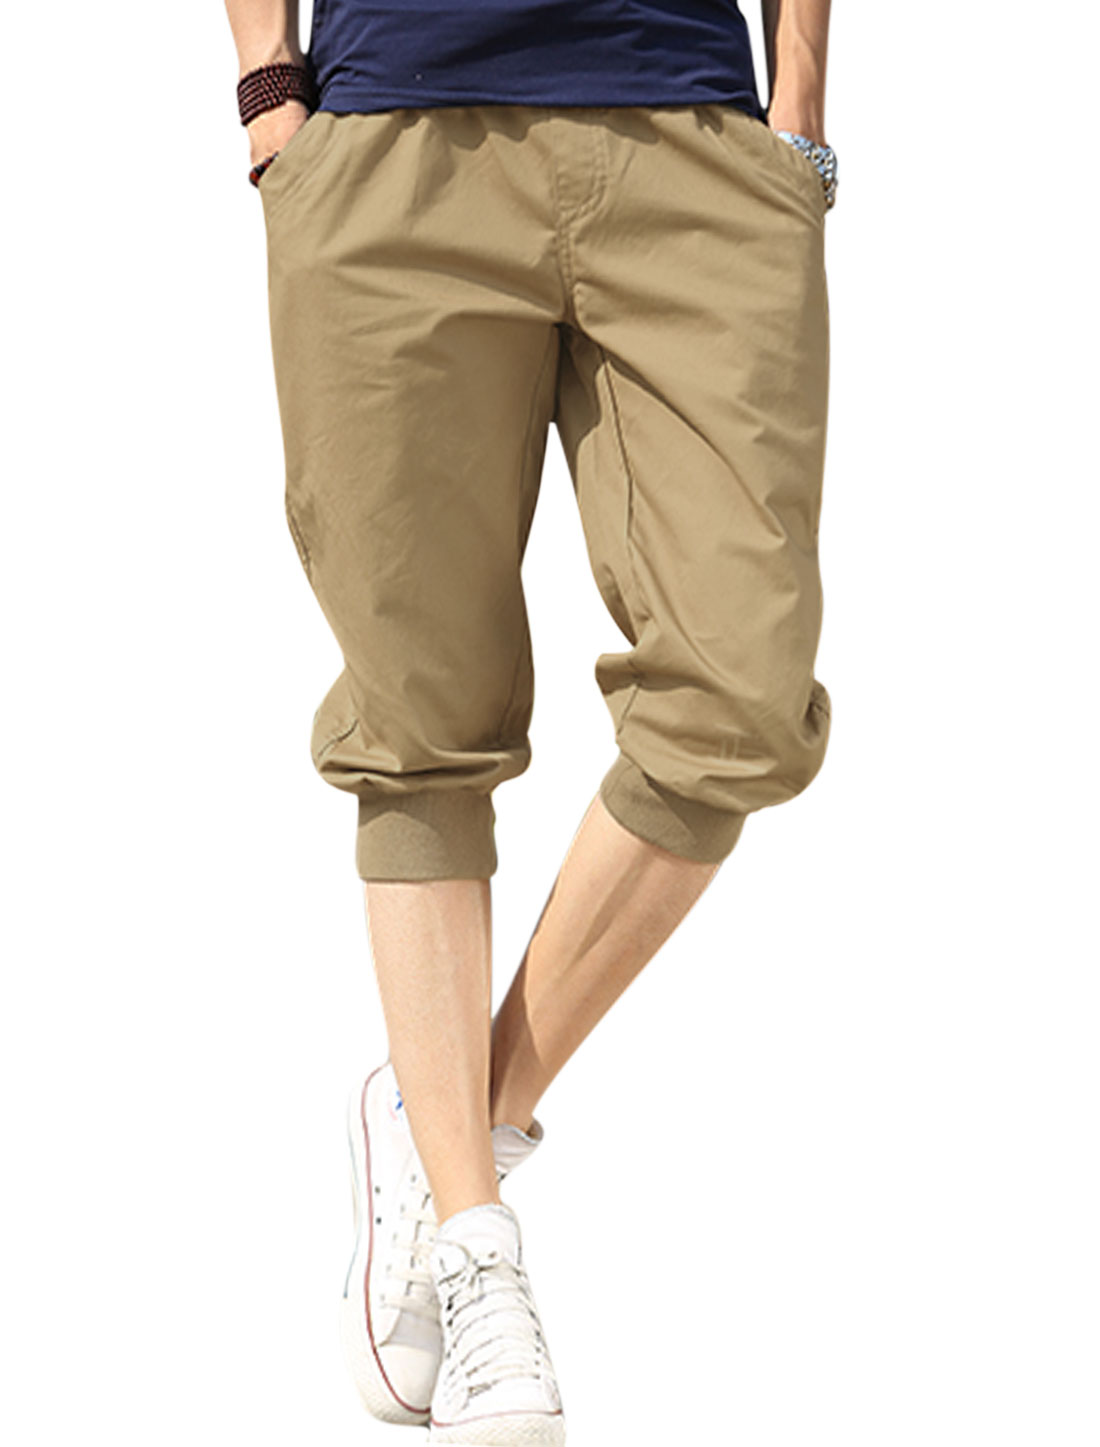 Men Drawstring Waist Slant Pockets Ribbed Cuffs Capris Khaki W30